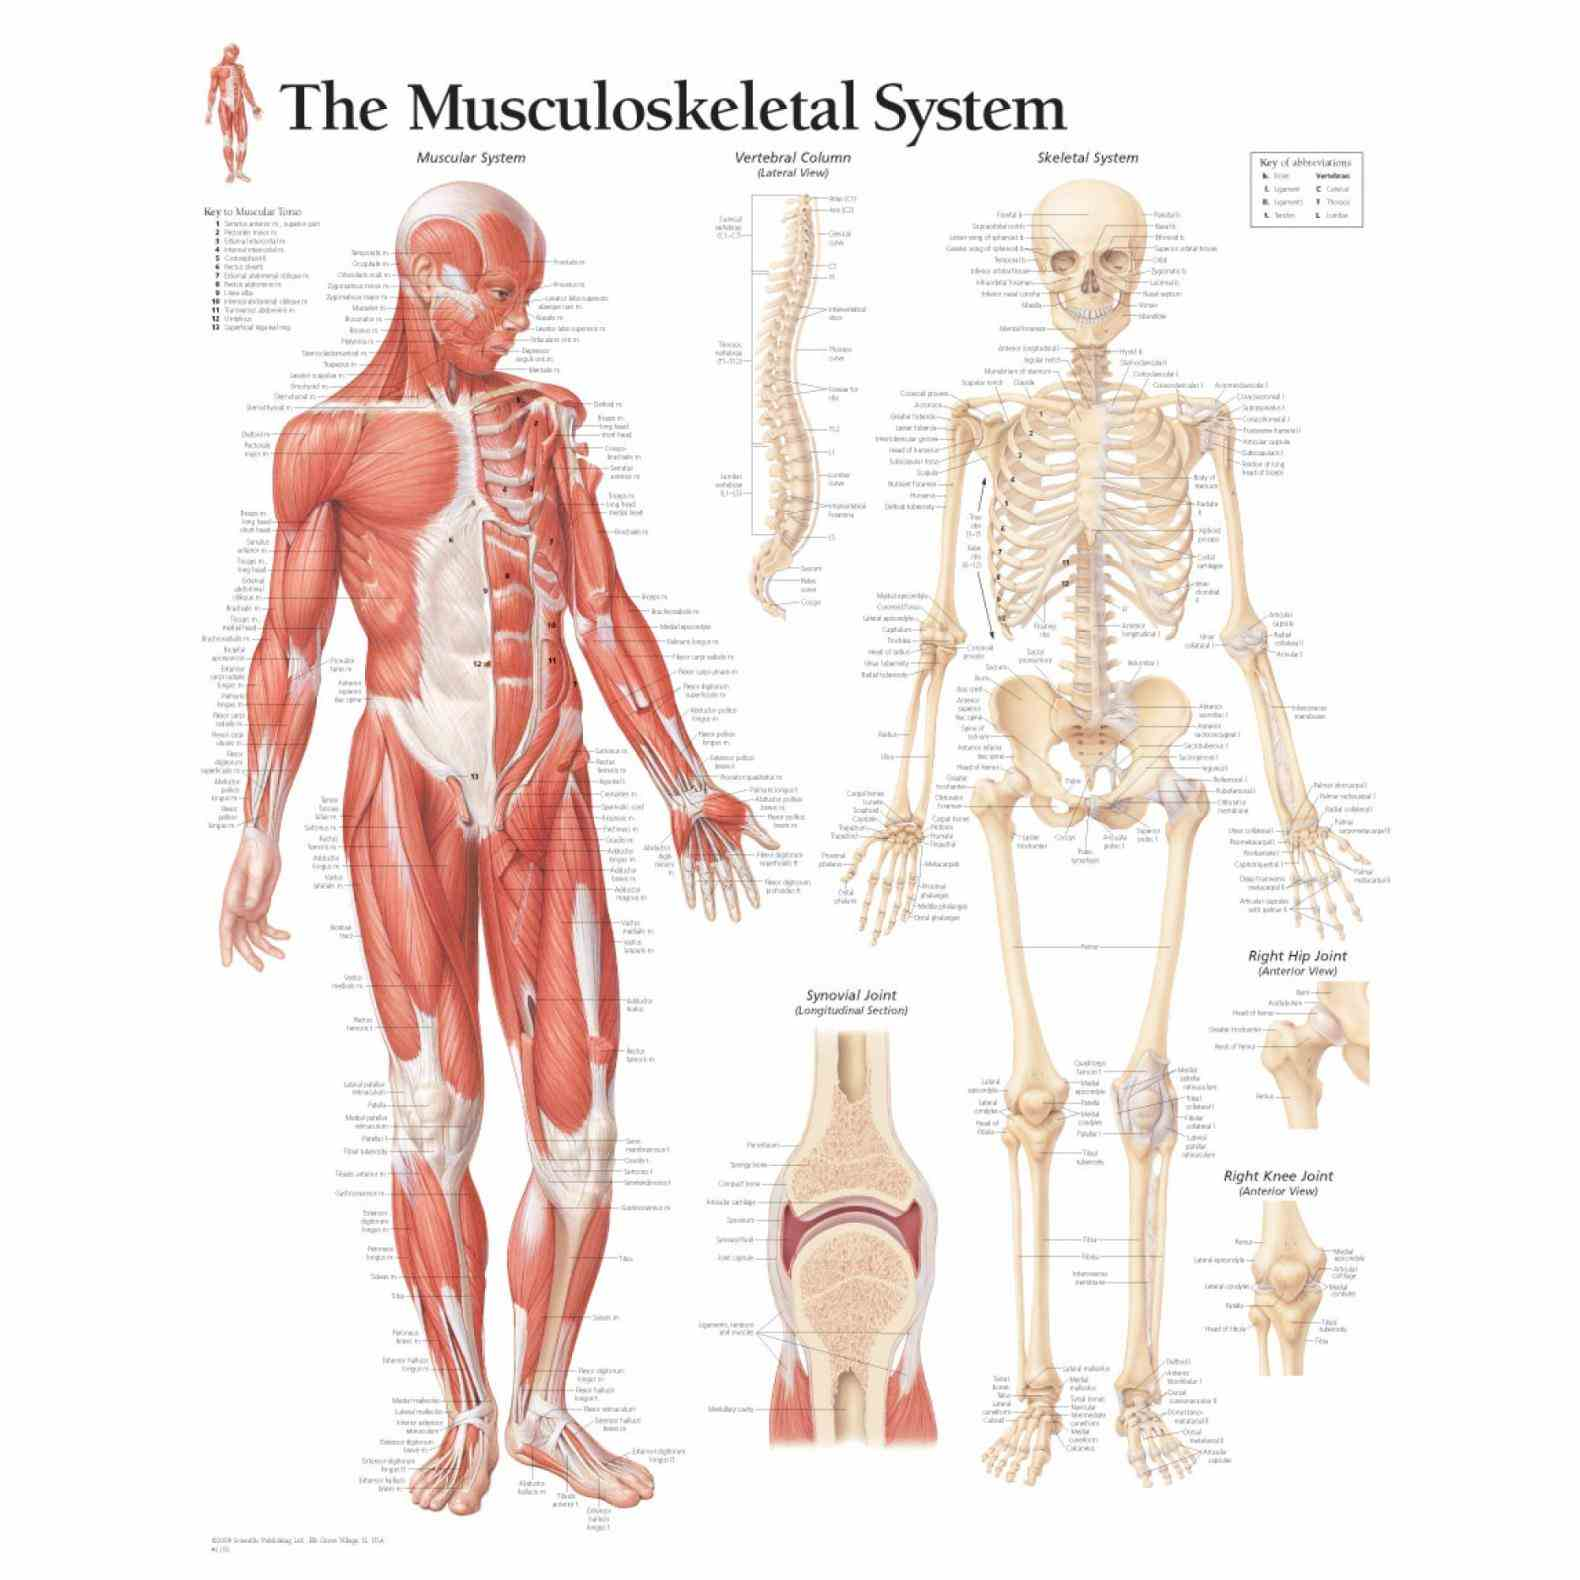 to bones skeletal are about named muscles that make  the Musculoskeletal System Anatomy human musculoskeletal system is an organ